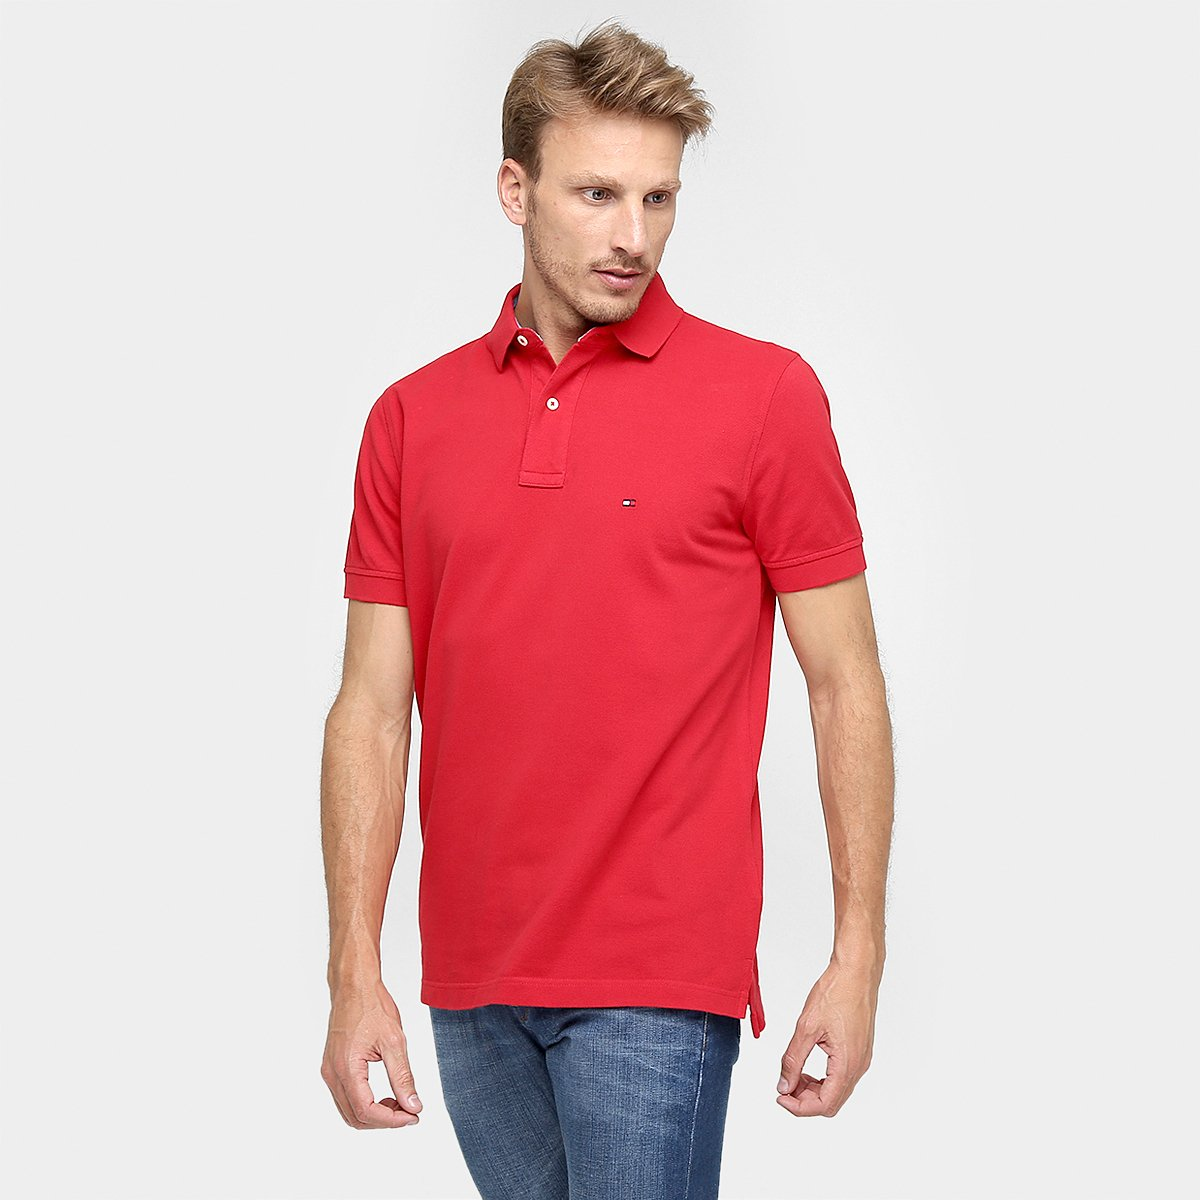 Camisa Polo Tommy Hilfiger Piquet Slim Fit Masculina - Compre Agora ... 57b7860f84823